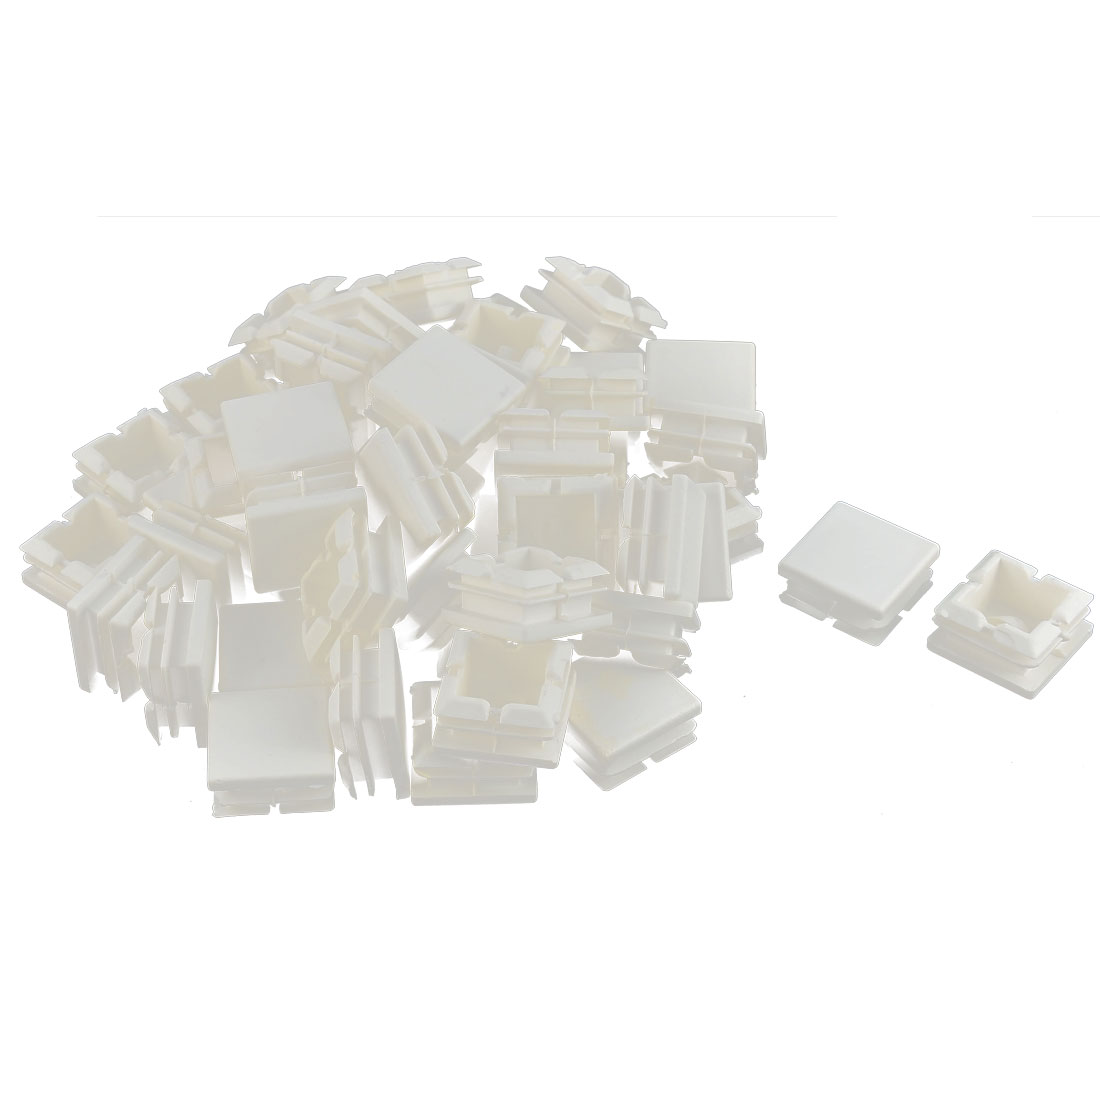 Furniture Table Chair Legs Plastic Square Tube Insert Cap Cover Protector White 25 x 25mm 50pcs